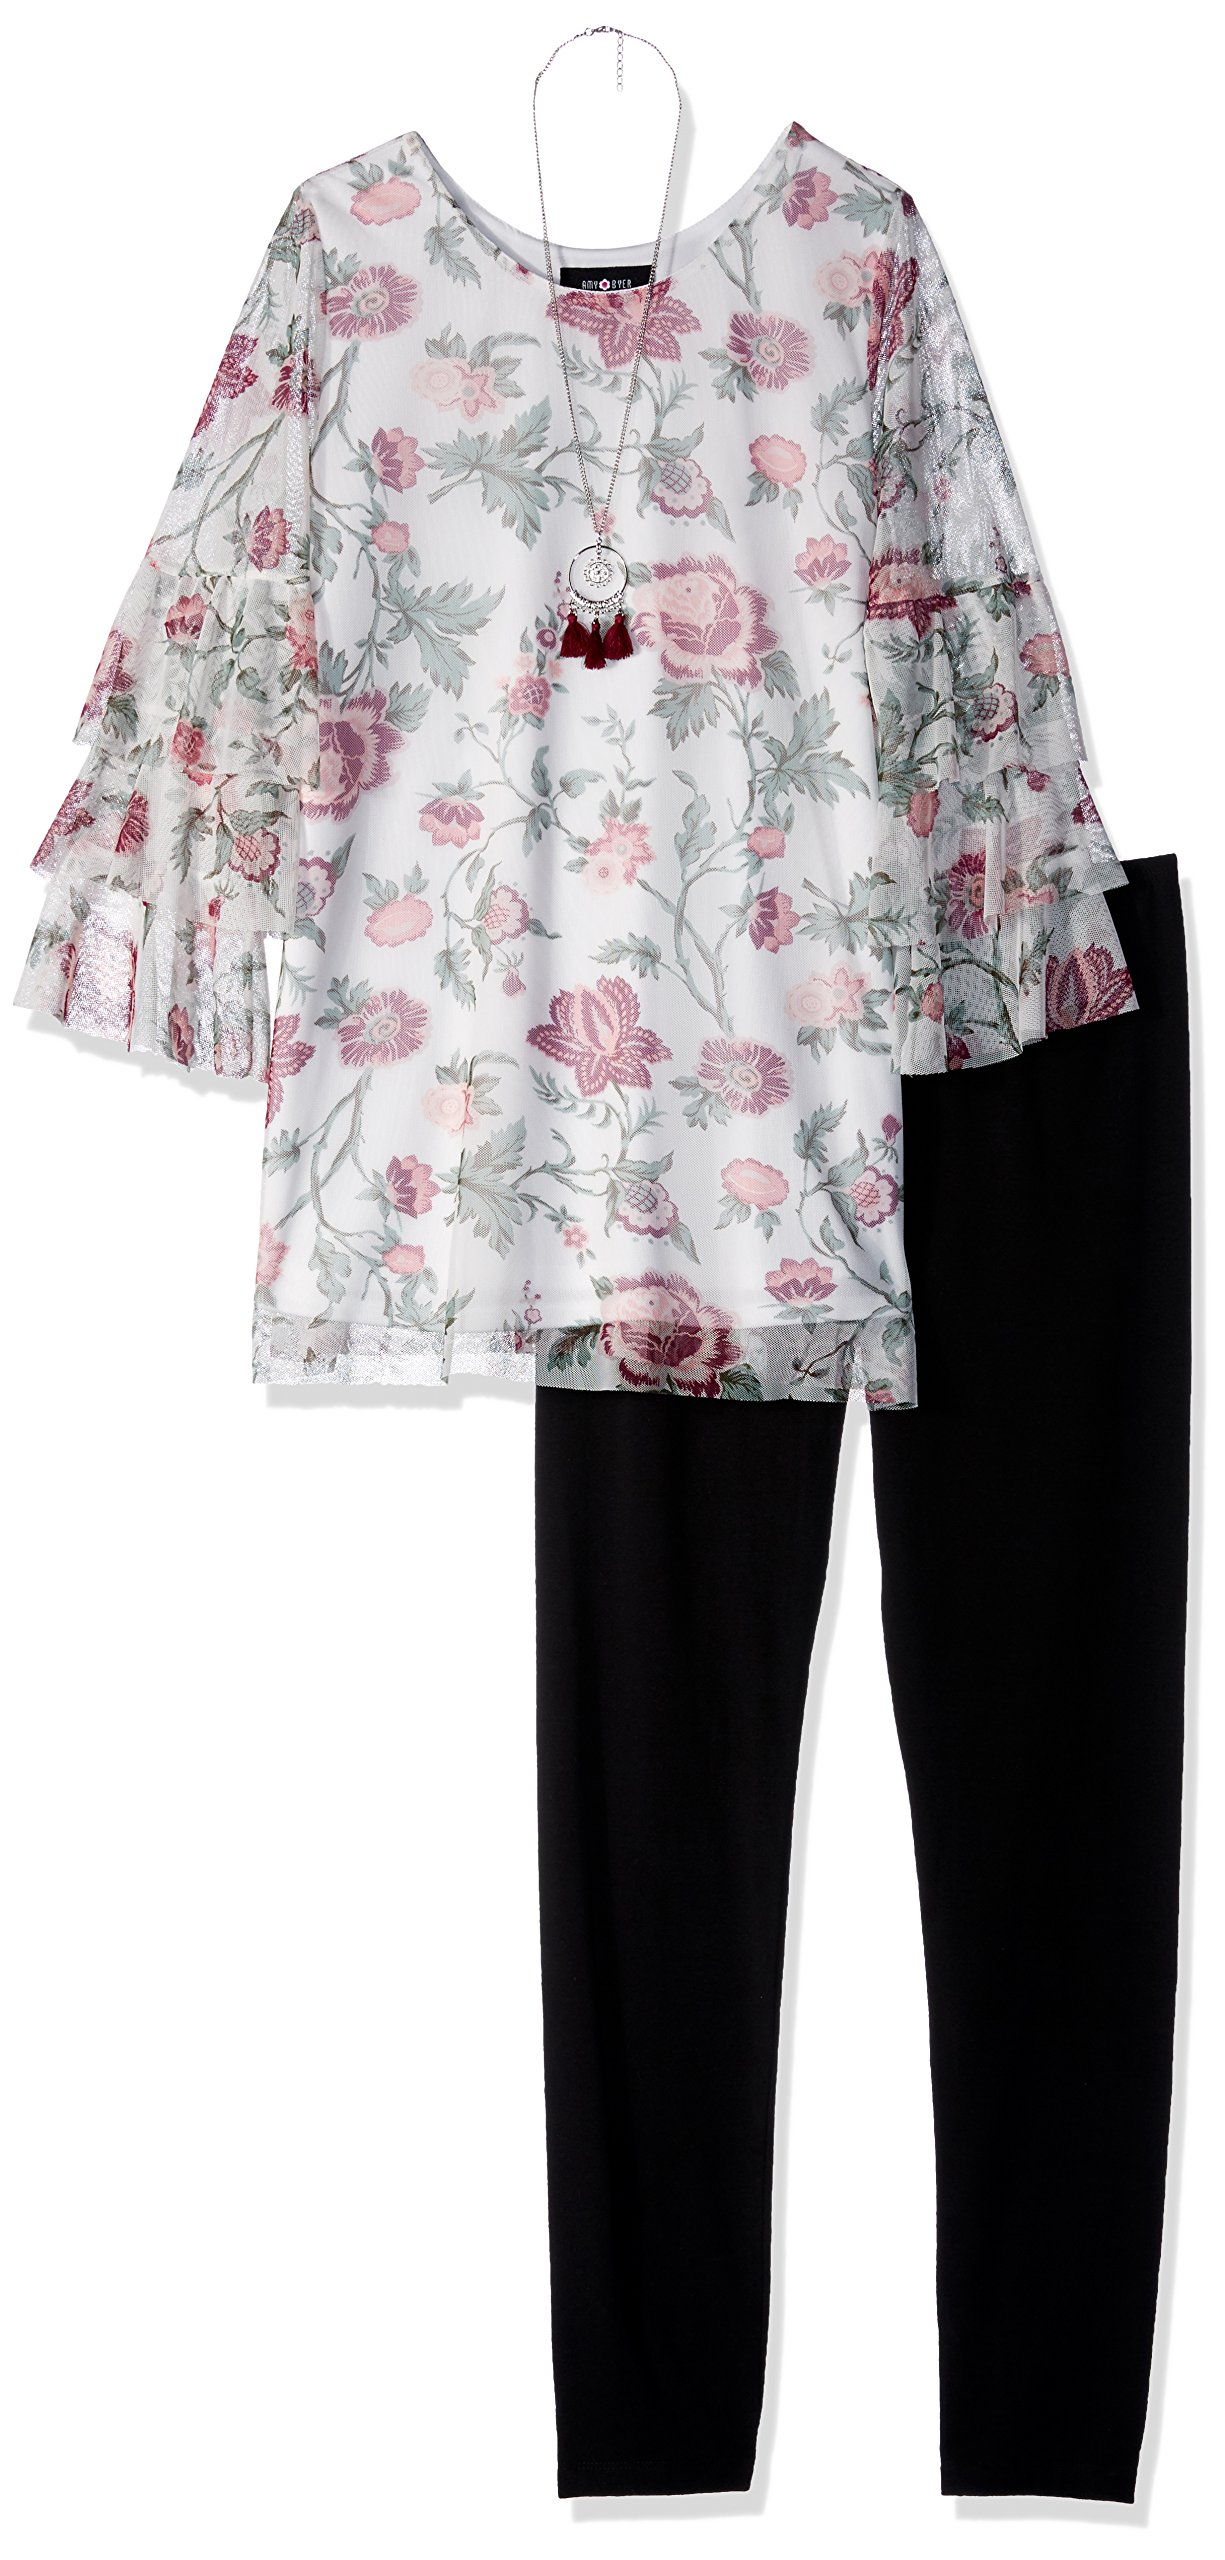 Amy Byer Big Girls' Long Sleeve Top and Legging Outfit Set, Swirling Floral/Black, S